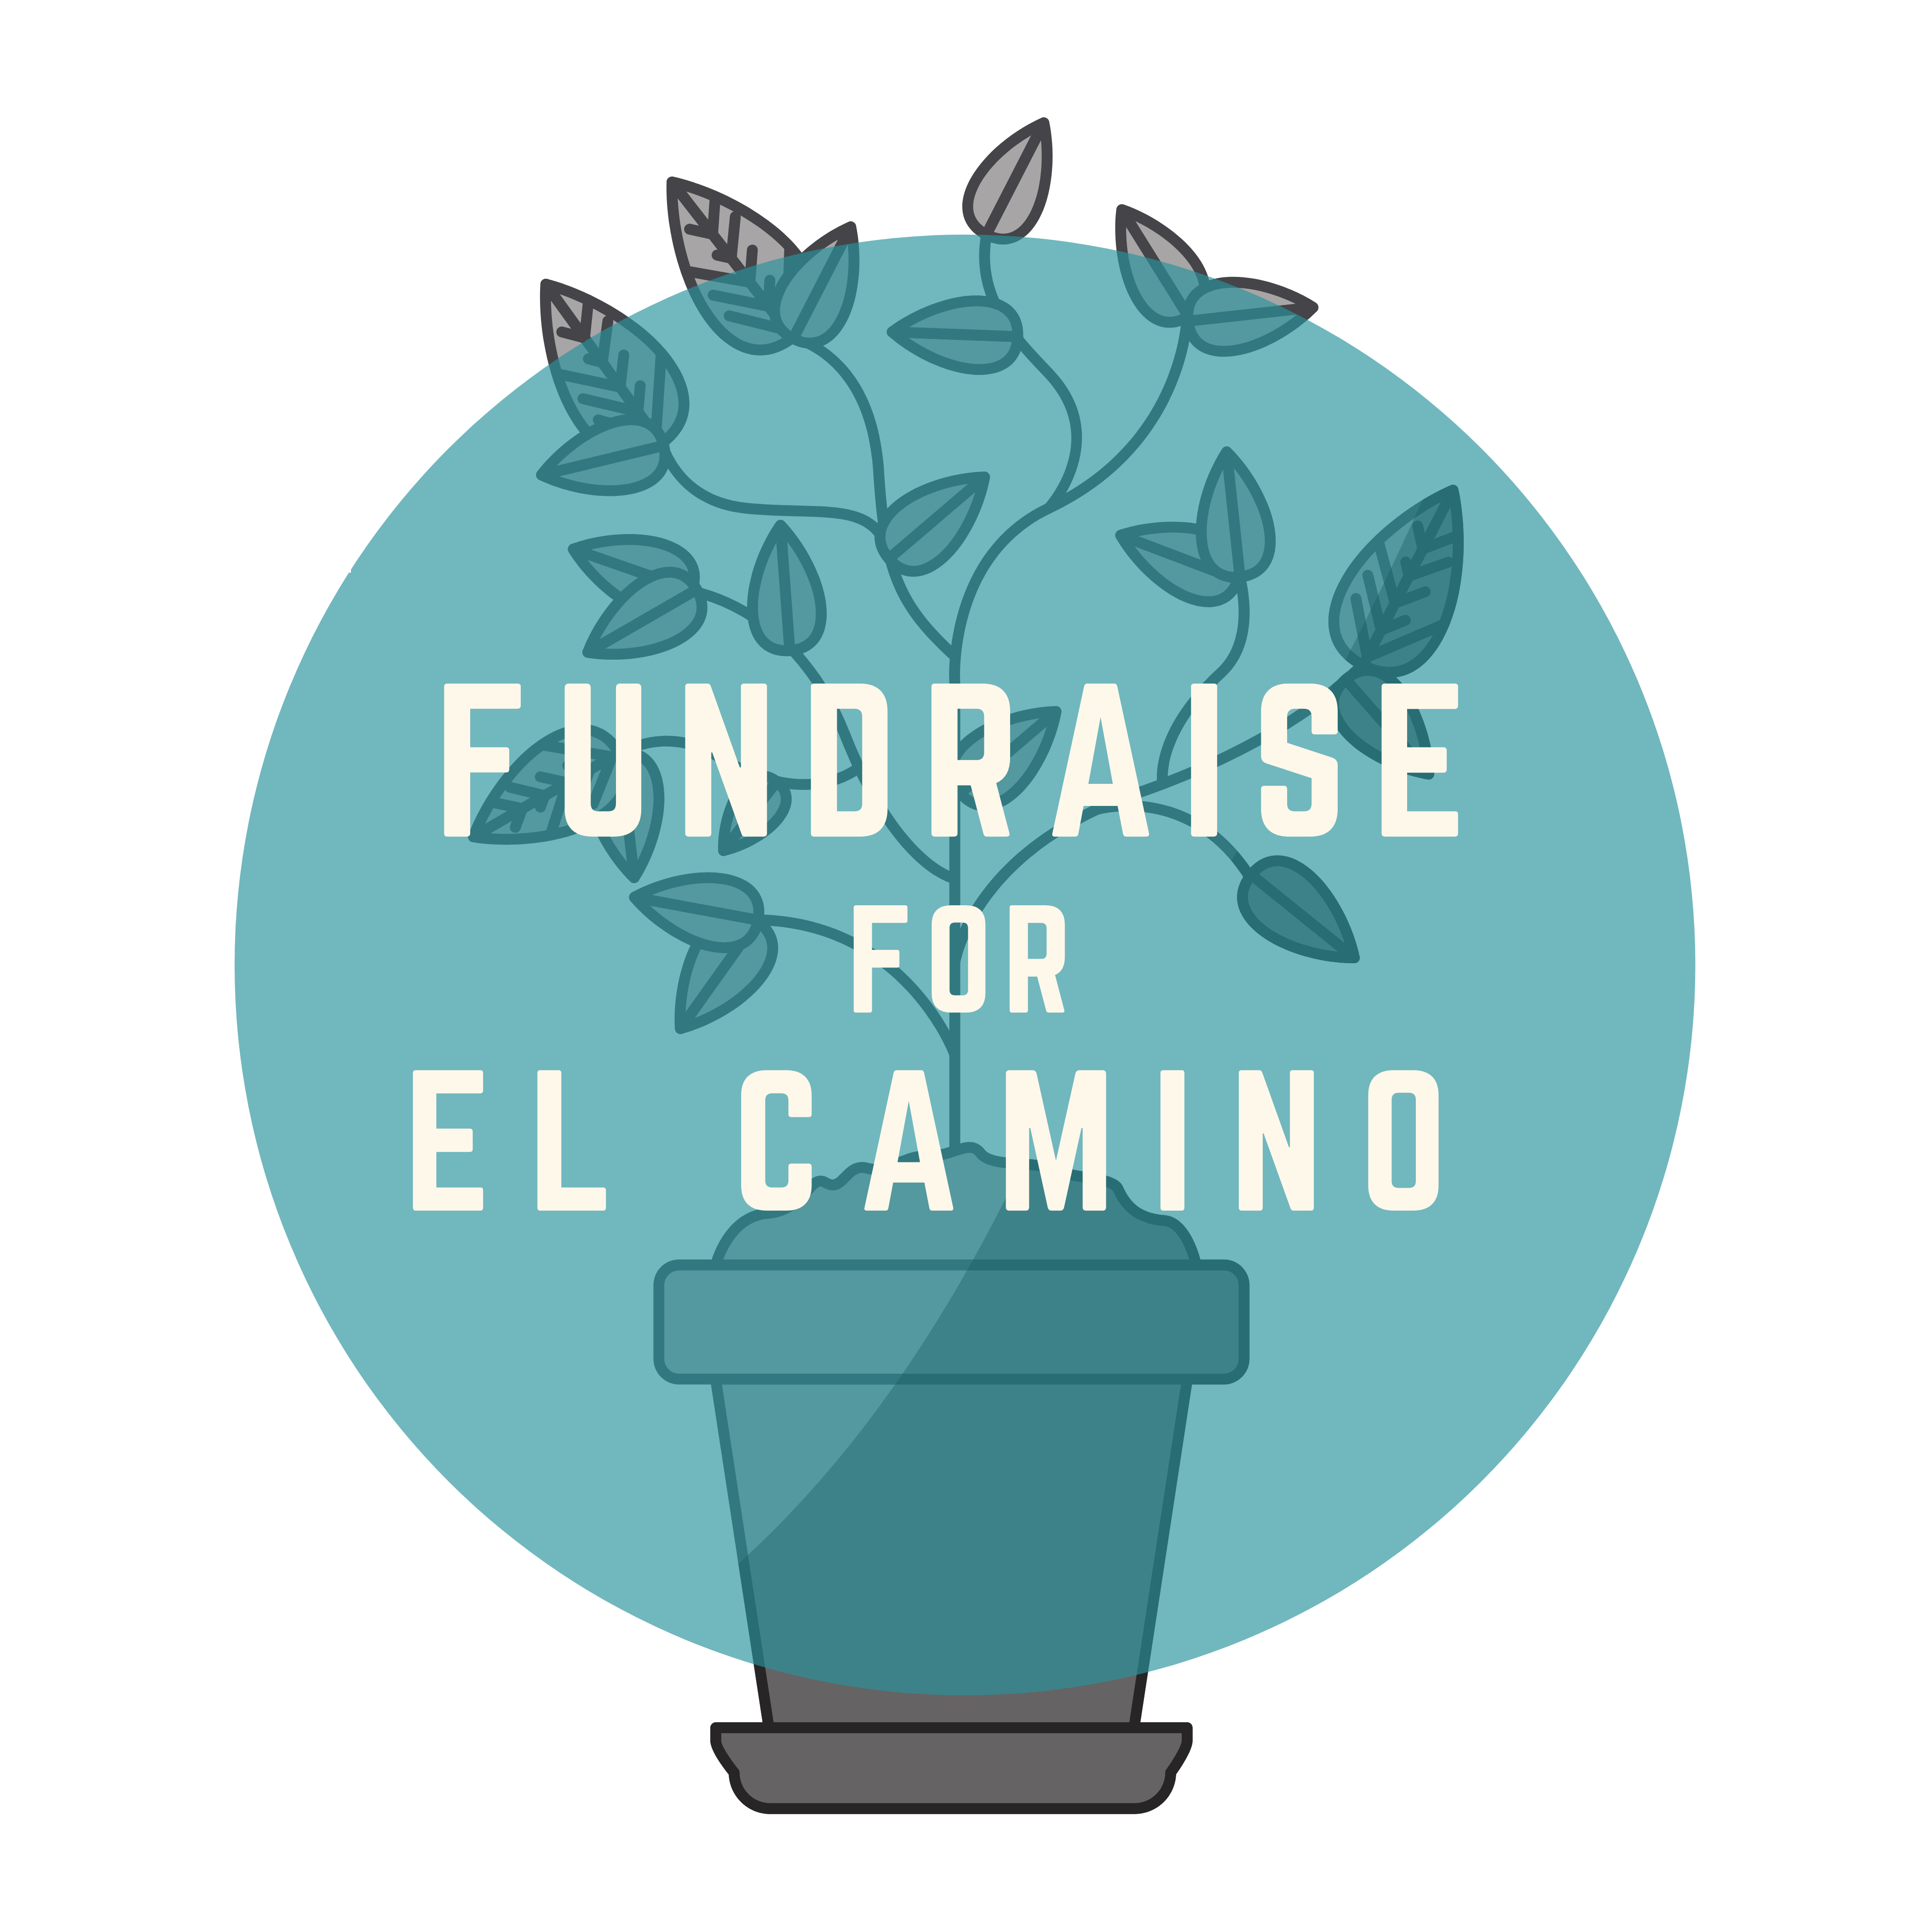 fundraiseelcaminopng.png